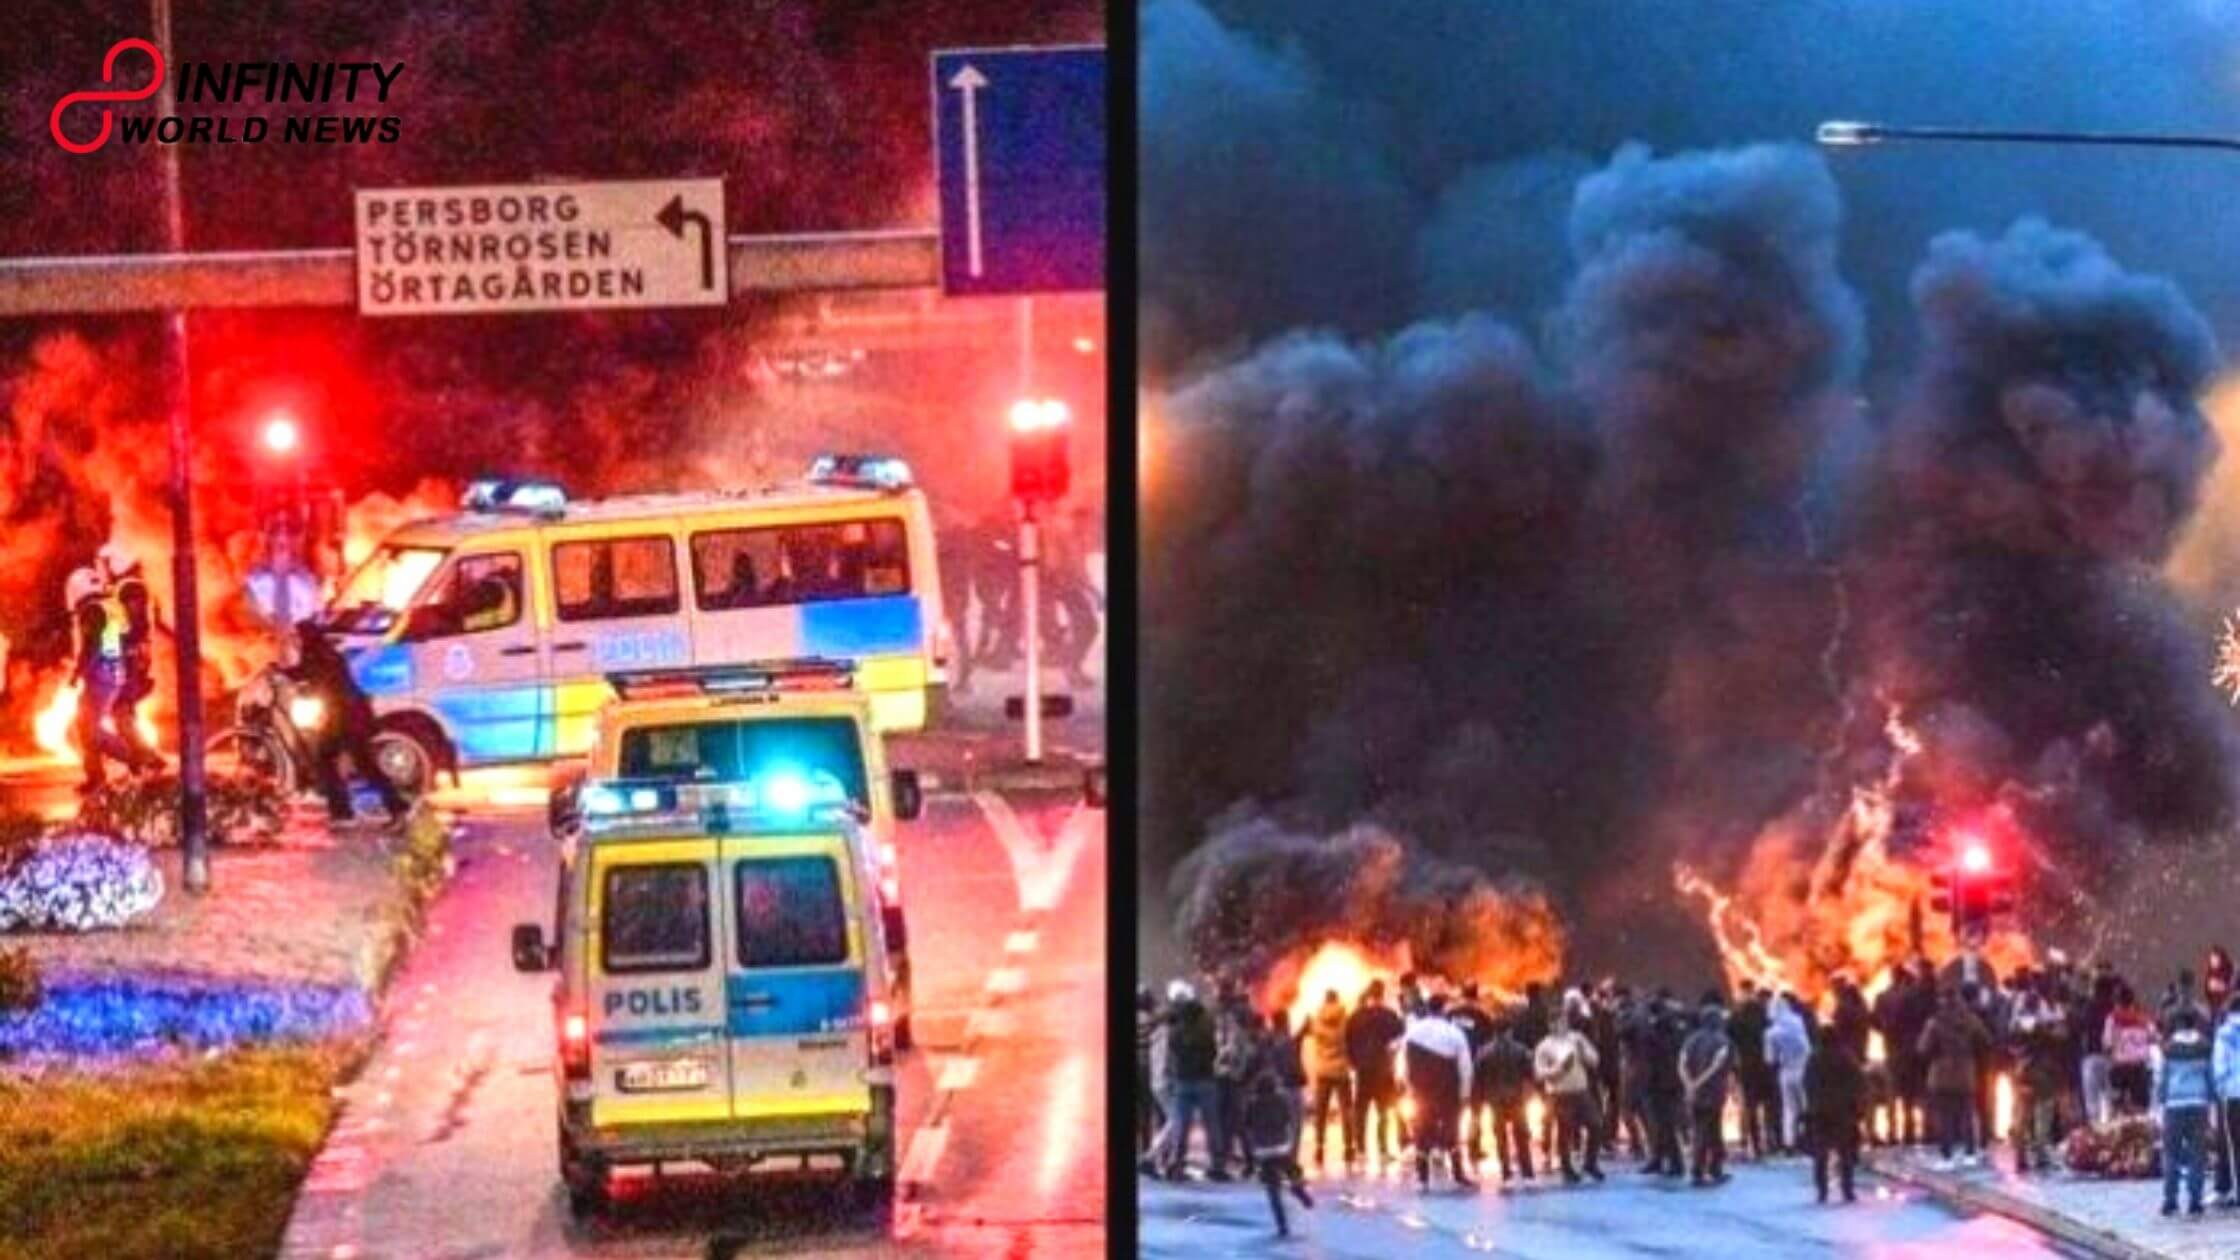 Stram Kurs, the extreme right Danish ideological group behind enemy of Islam riots in Sweden